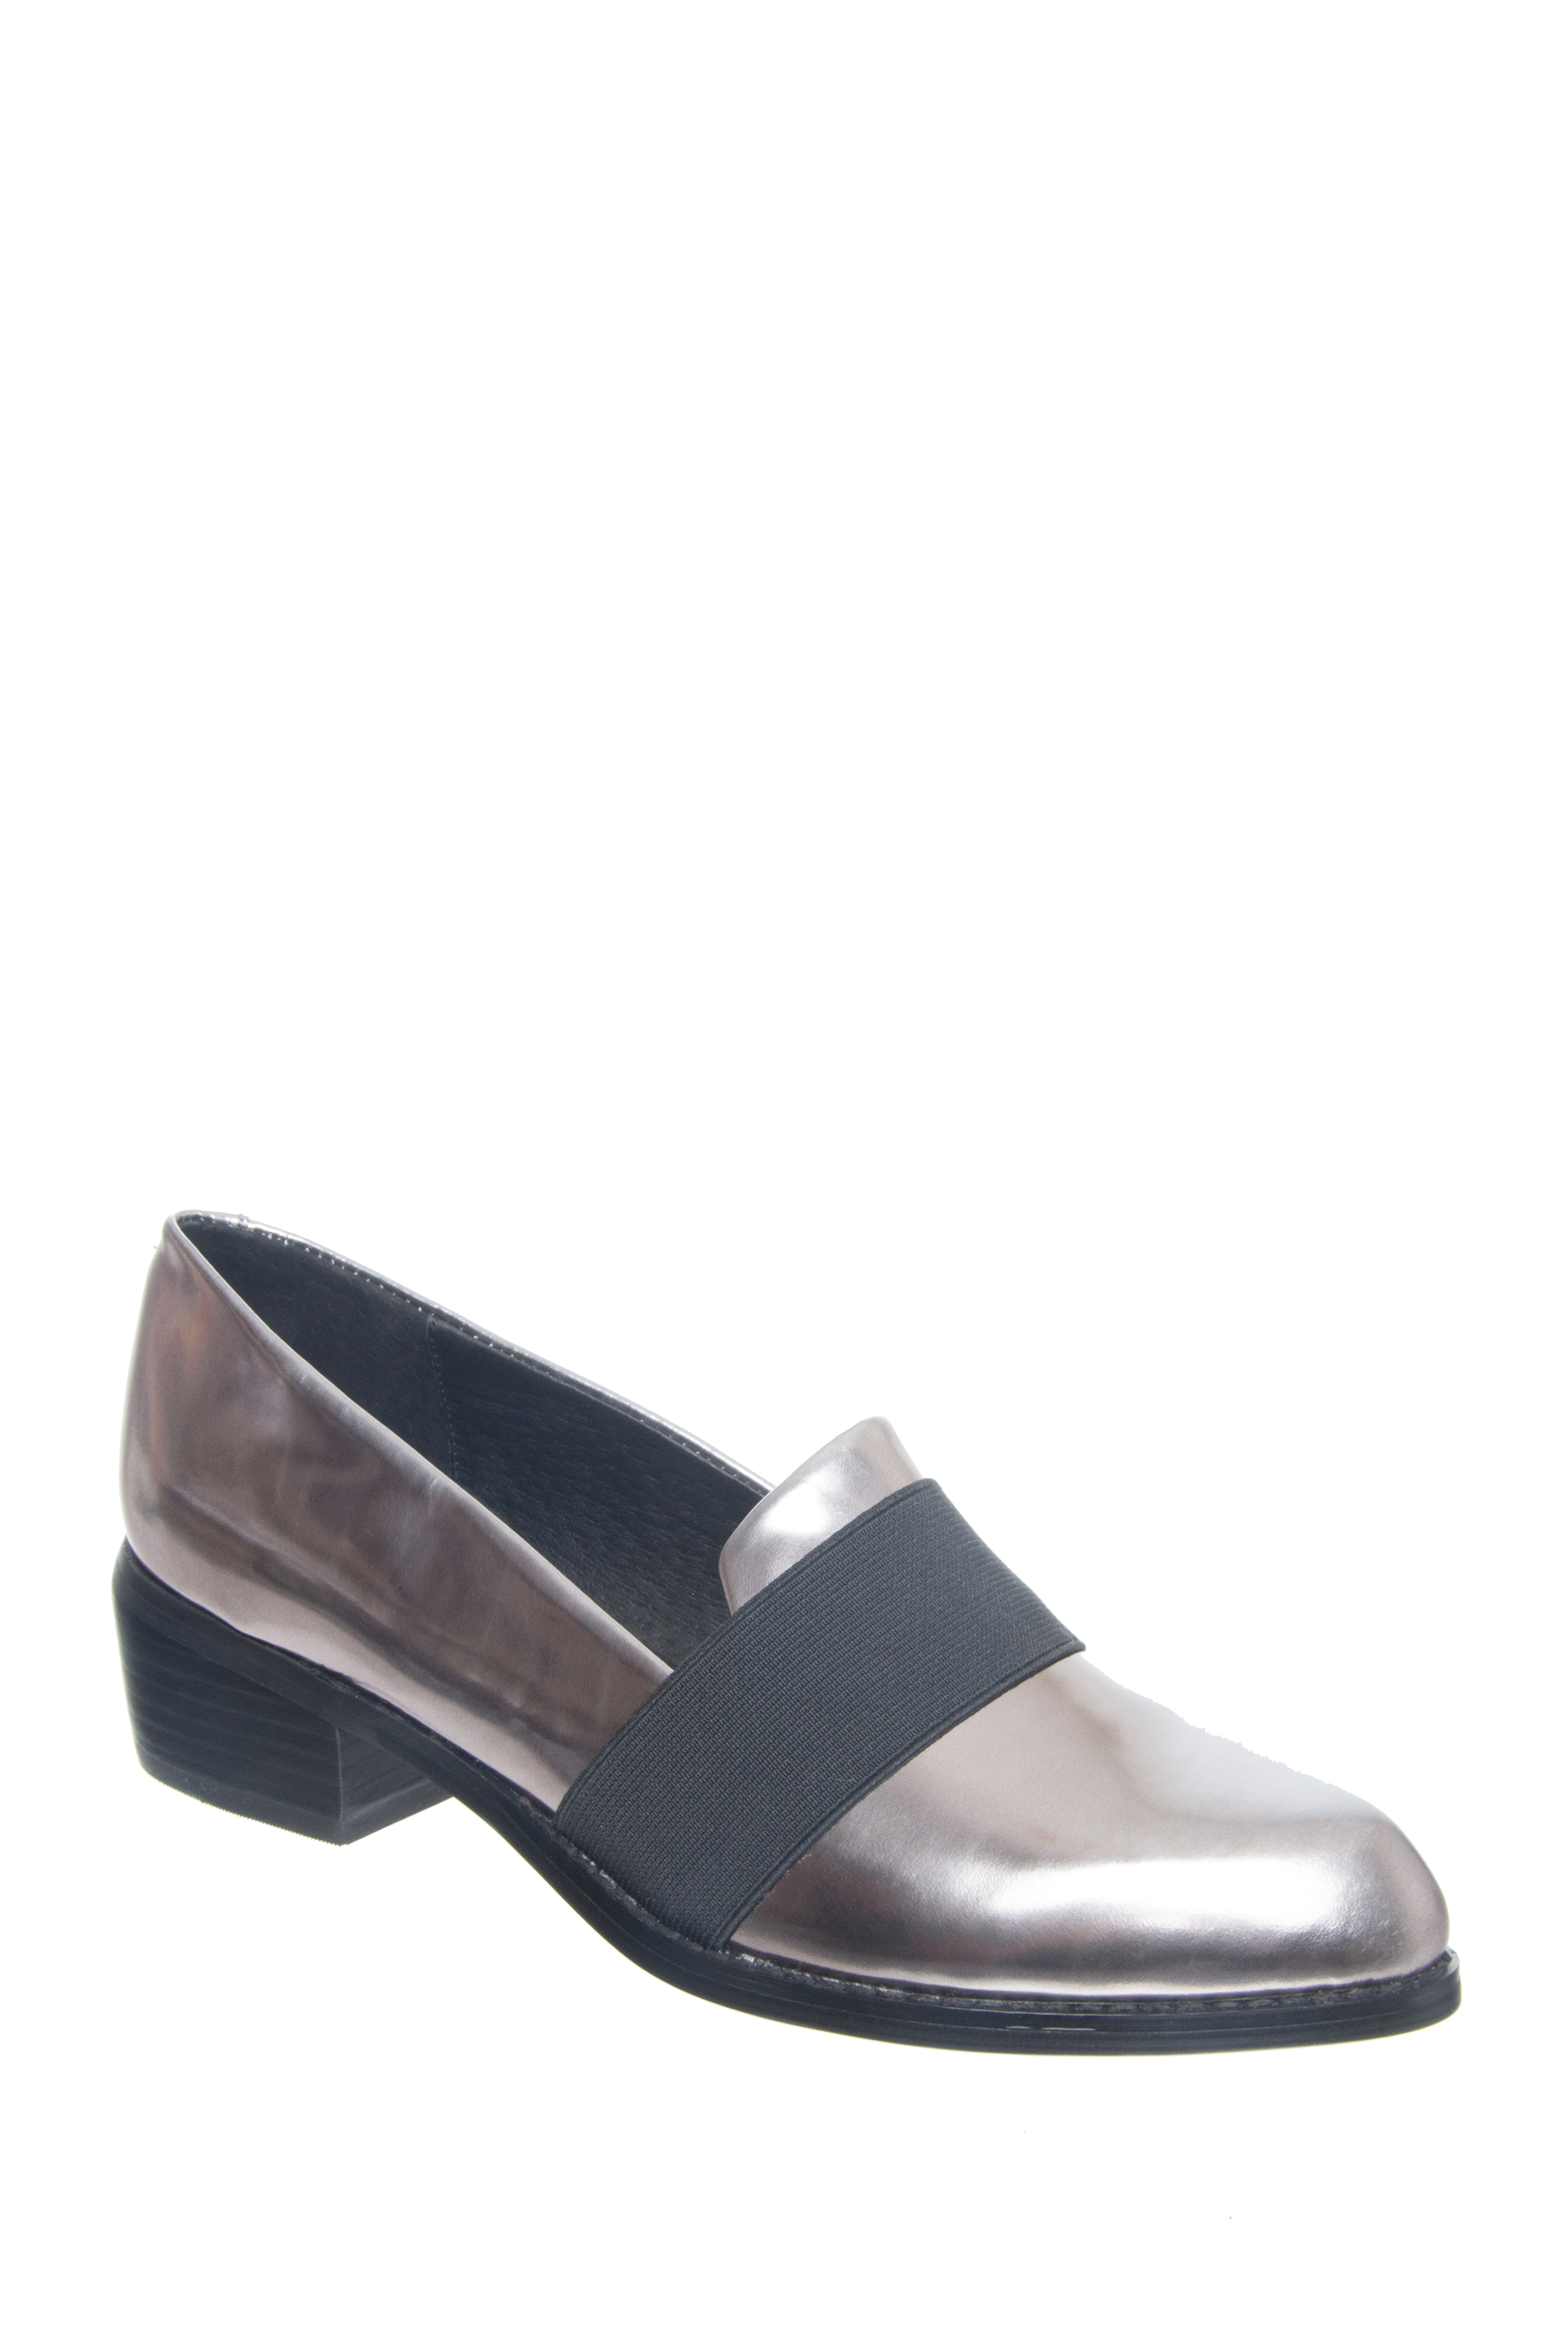 Sol Sana Dill Pointed -Toe Loafers -  Pewter